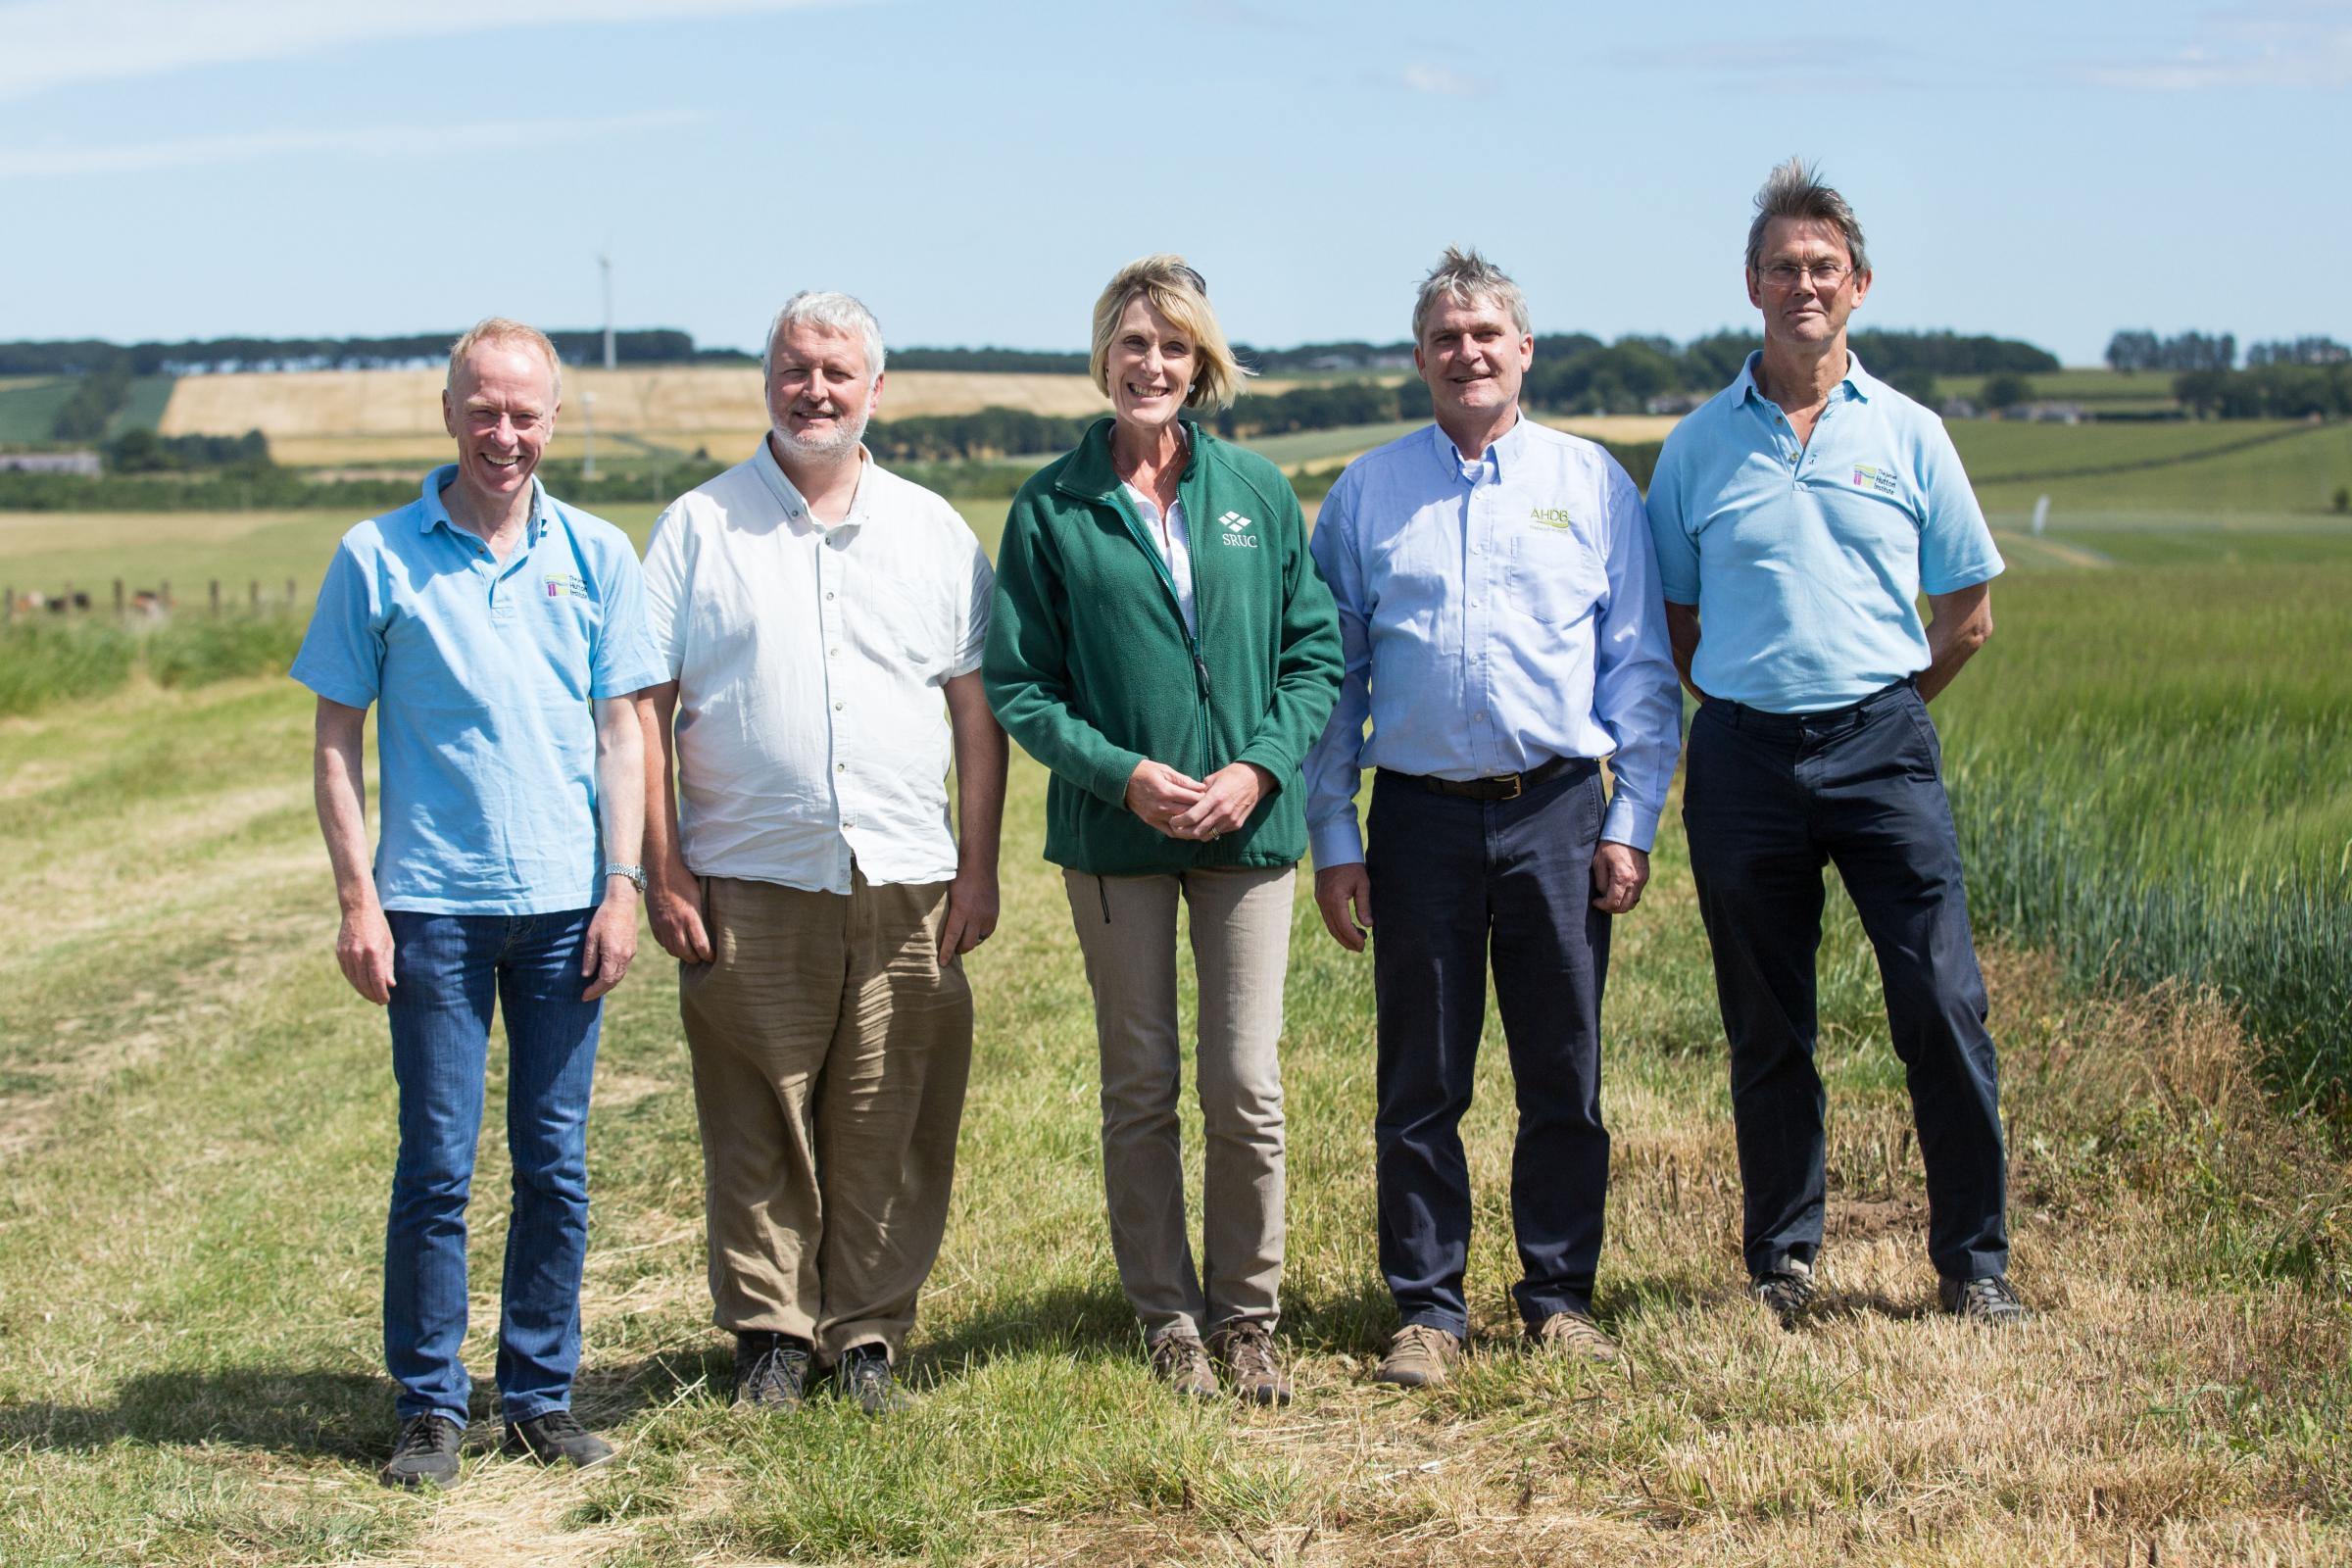 The speakers at this year's Cereals in Practice event held near Oldmeldrum